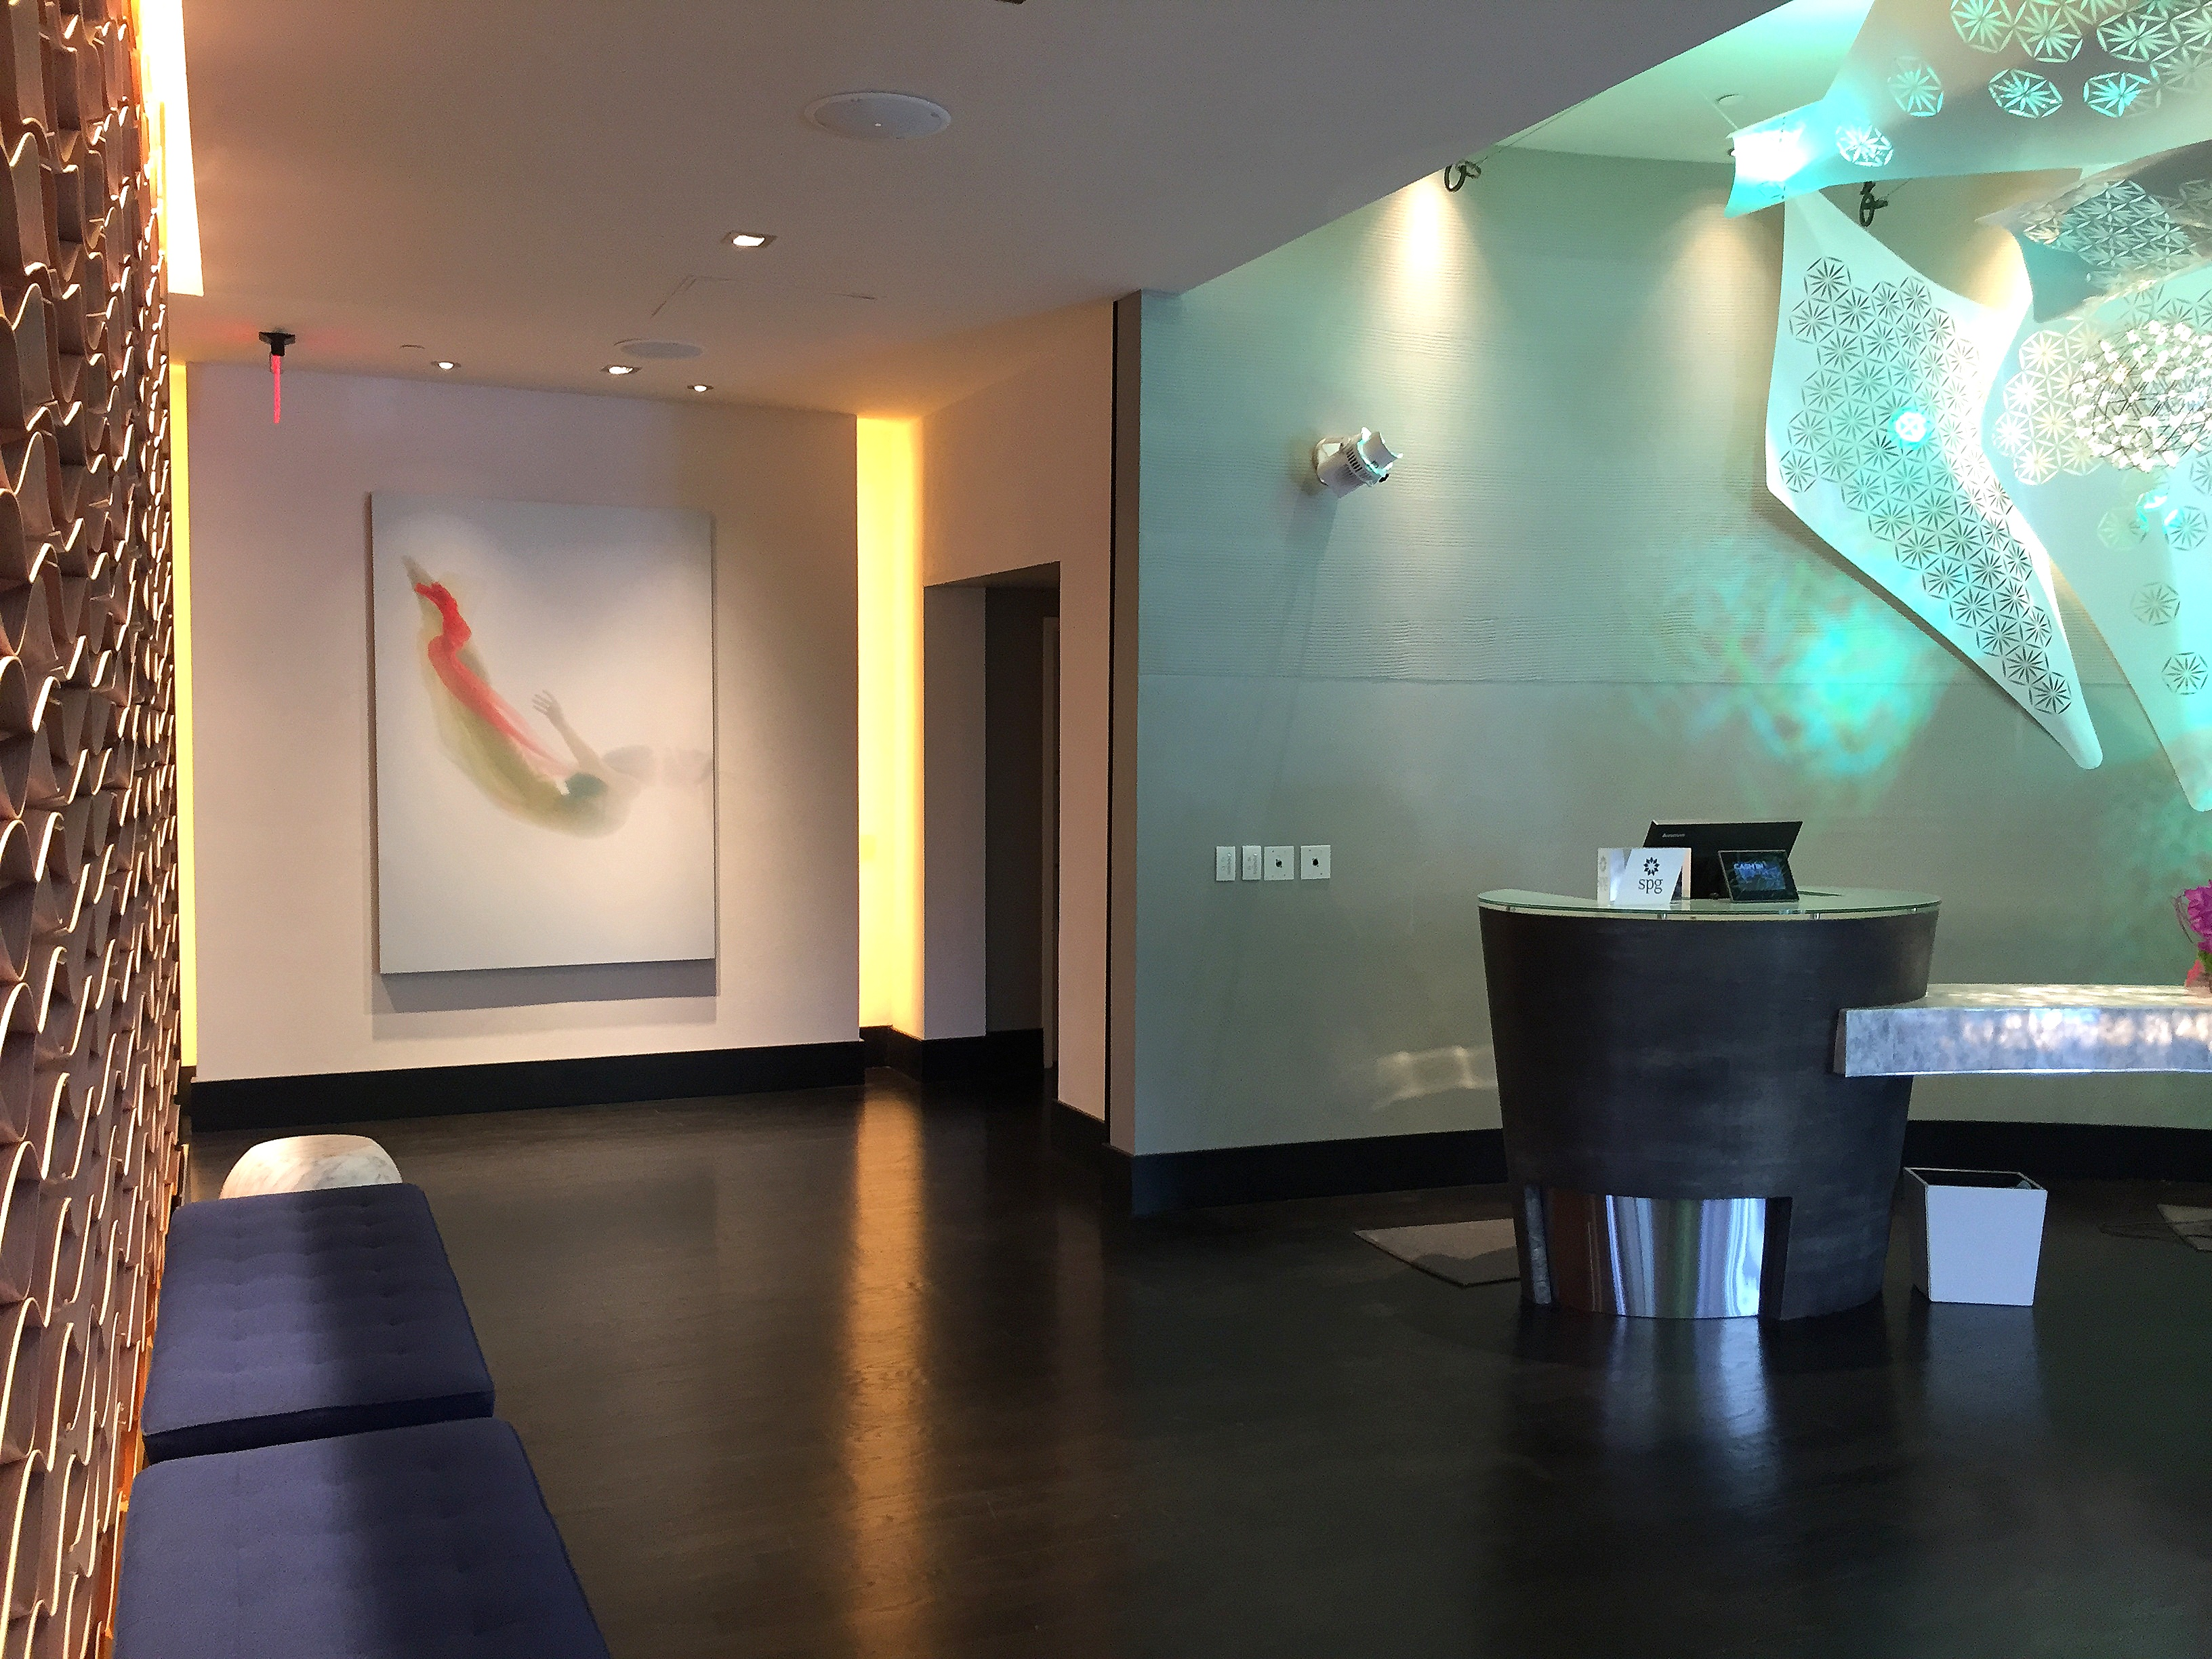 Featured Plaster Wall at The W Hotel Los Angeles